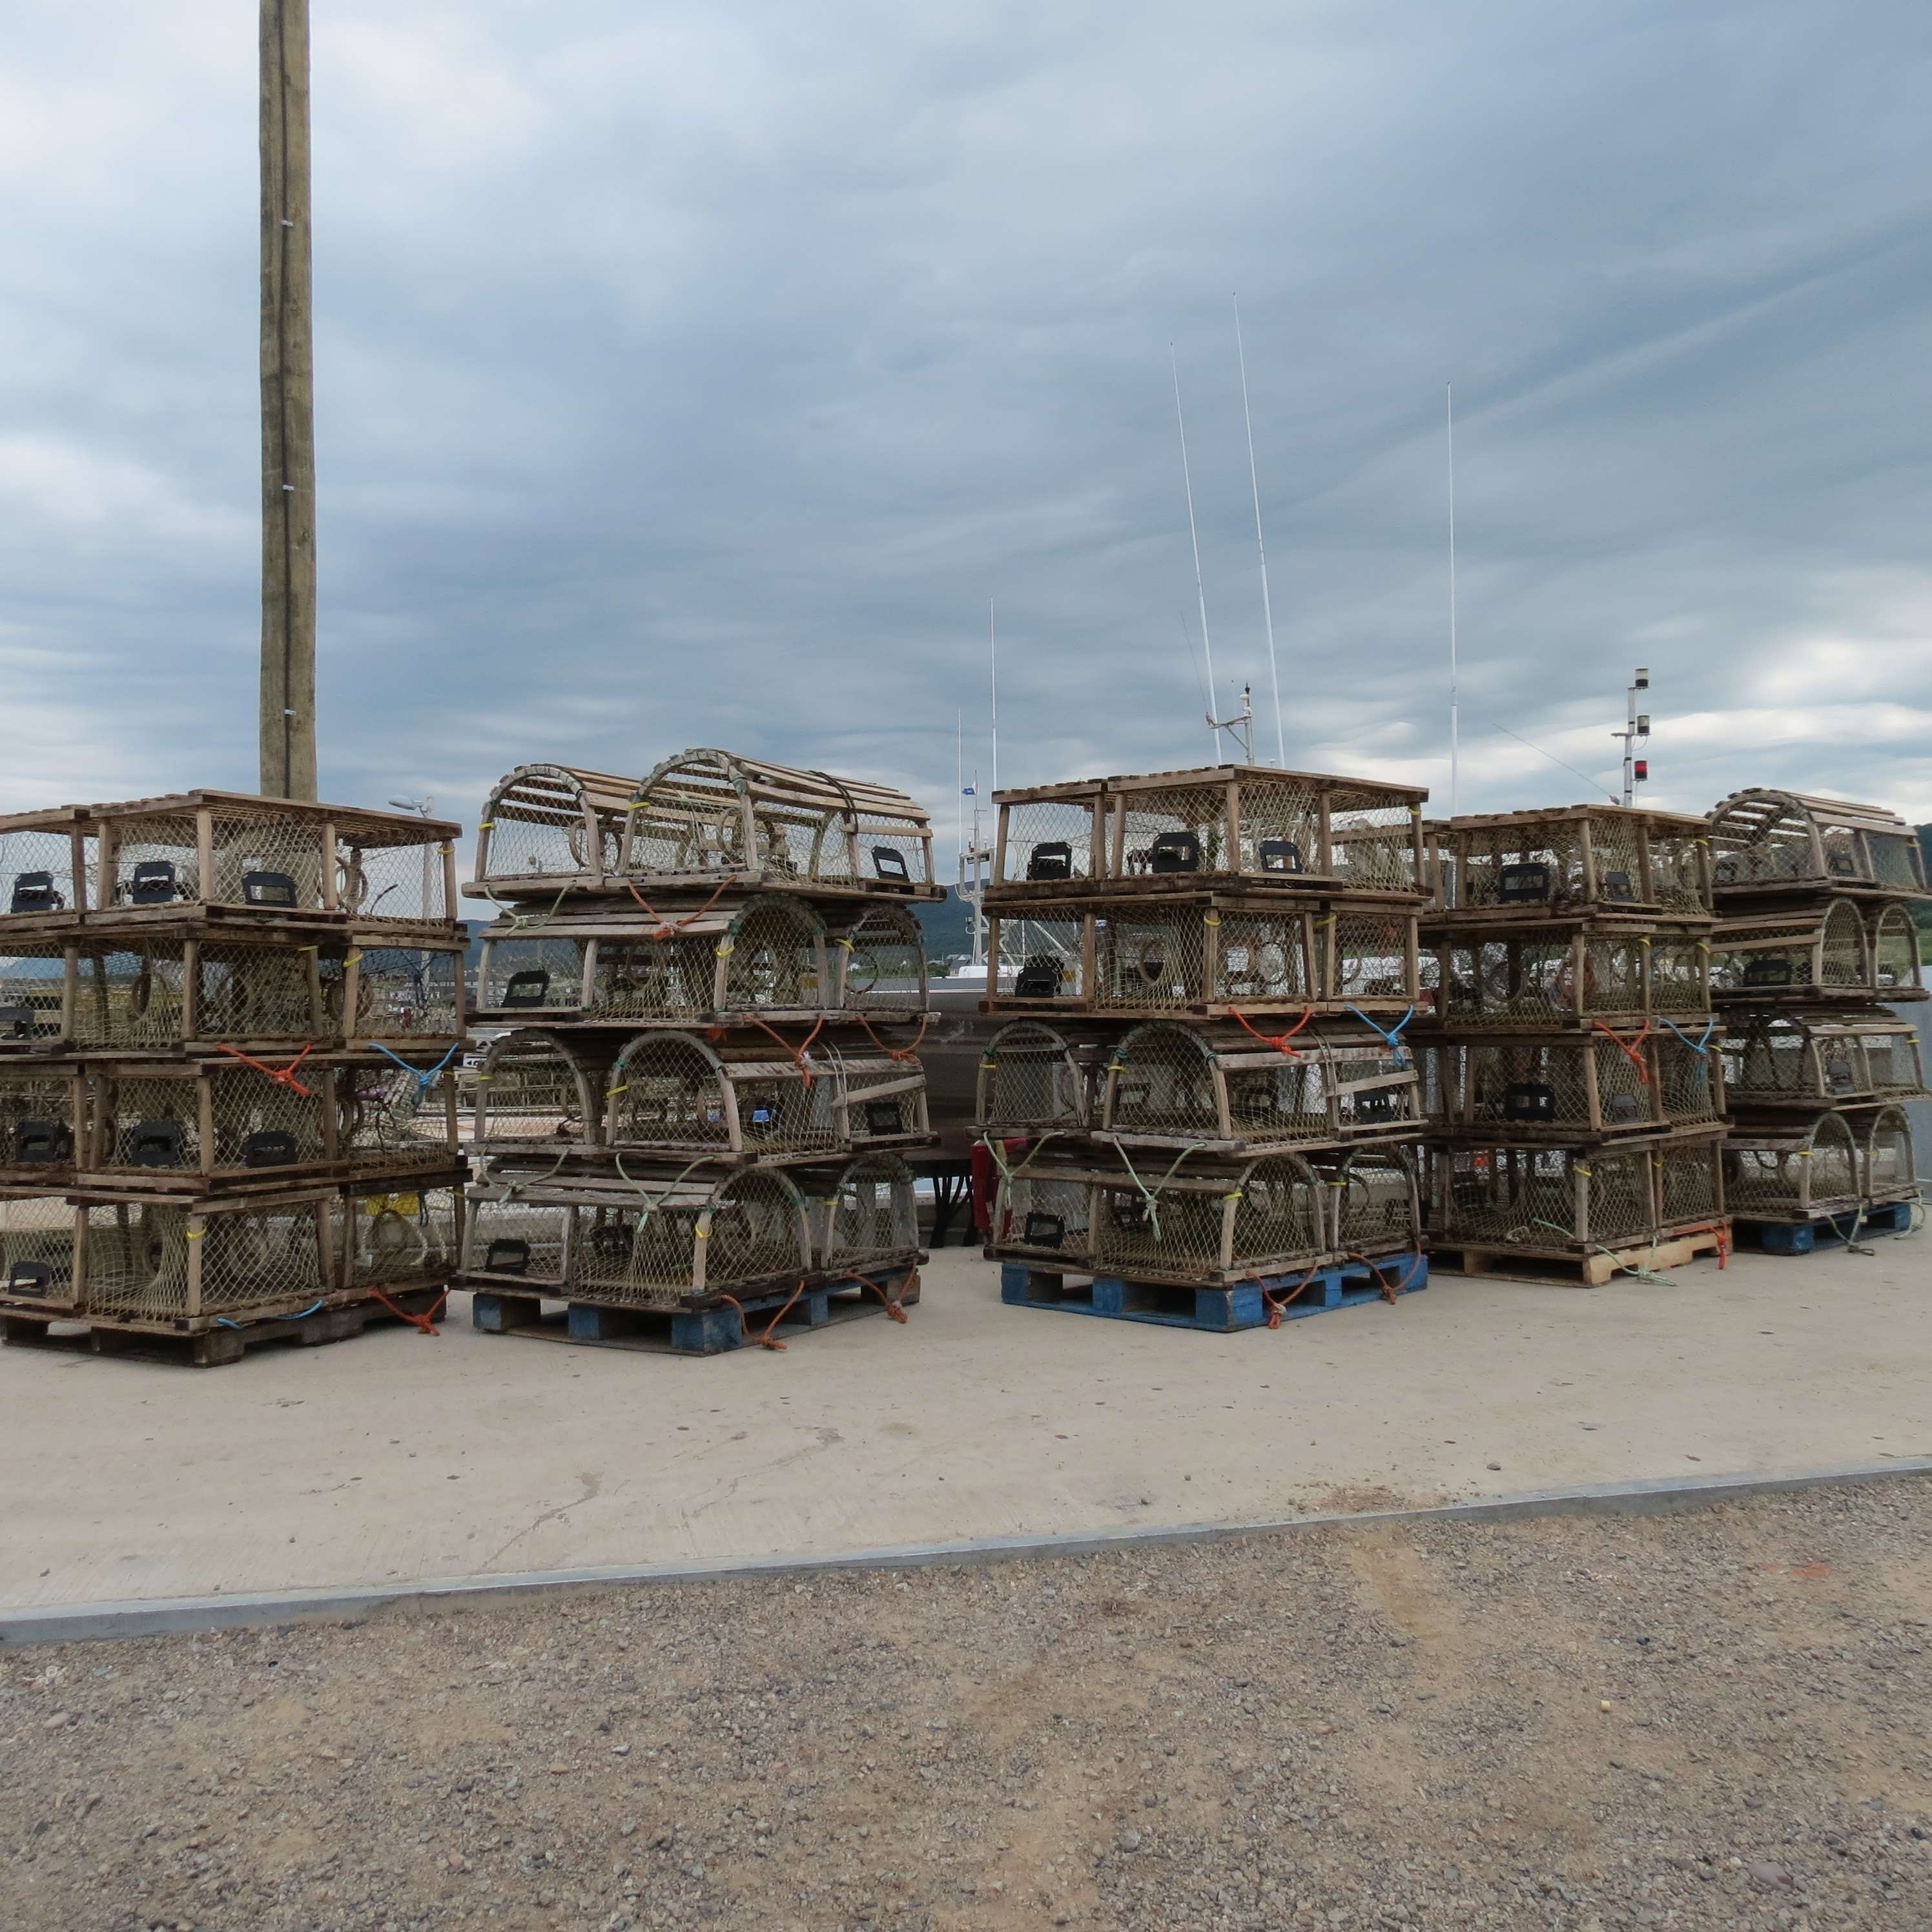 Lobster traps at the Belle Cote Wharf